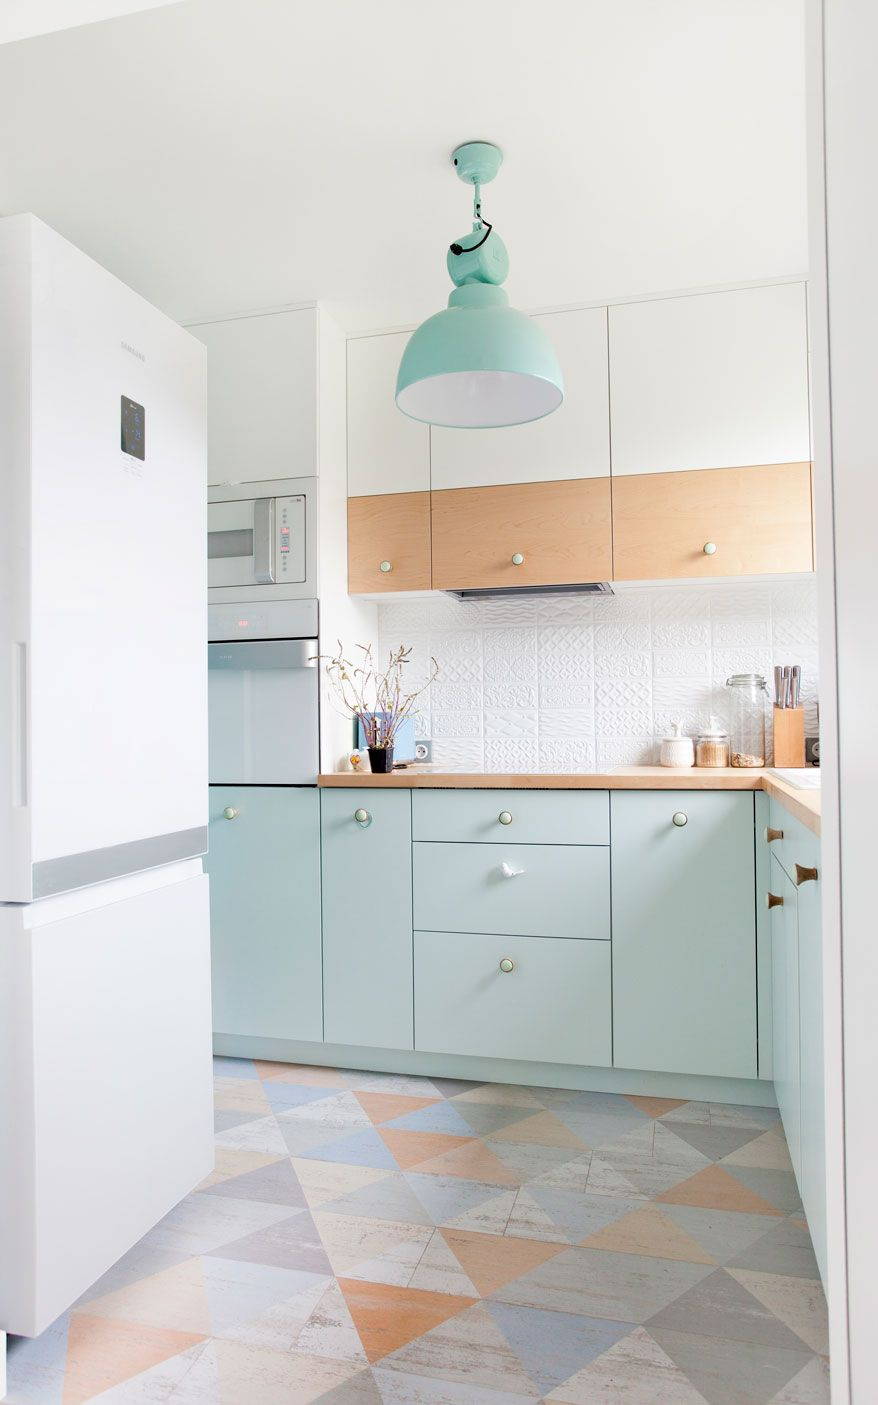 Unique Geometric Flooring + Pastel Color Palette Kitchen + Painted ...